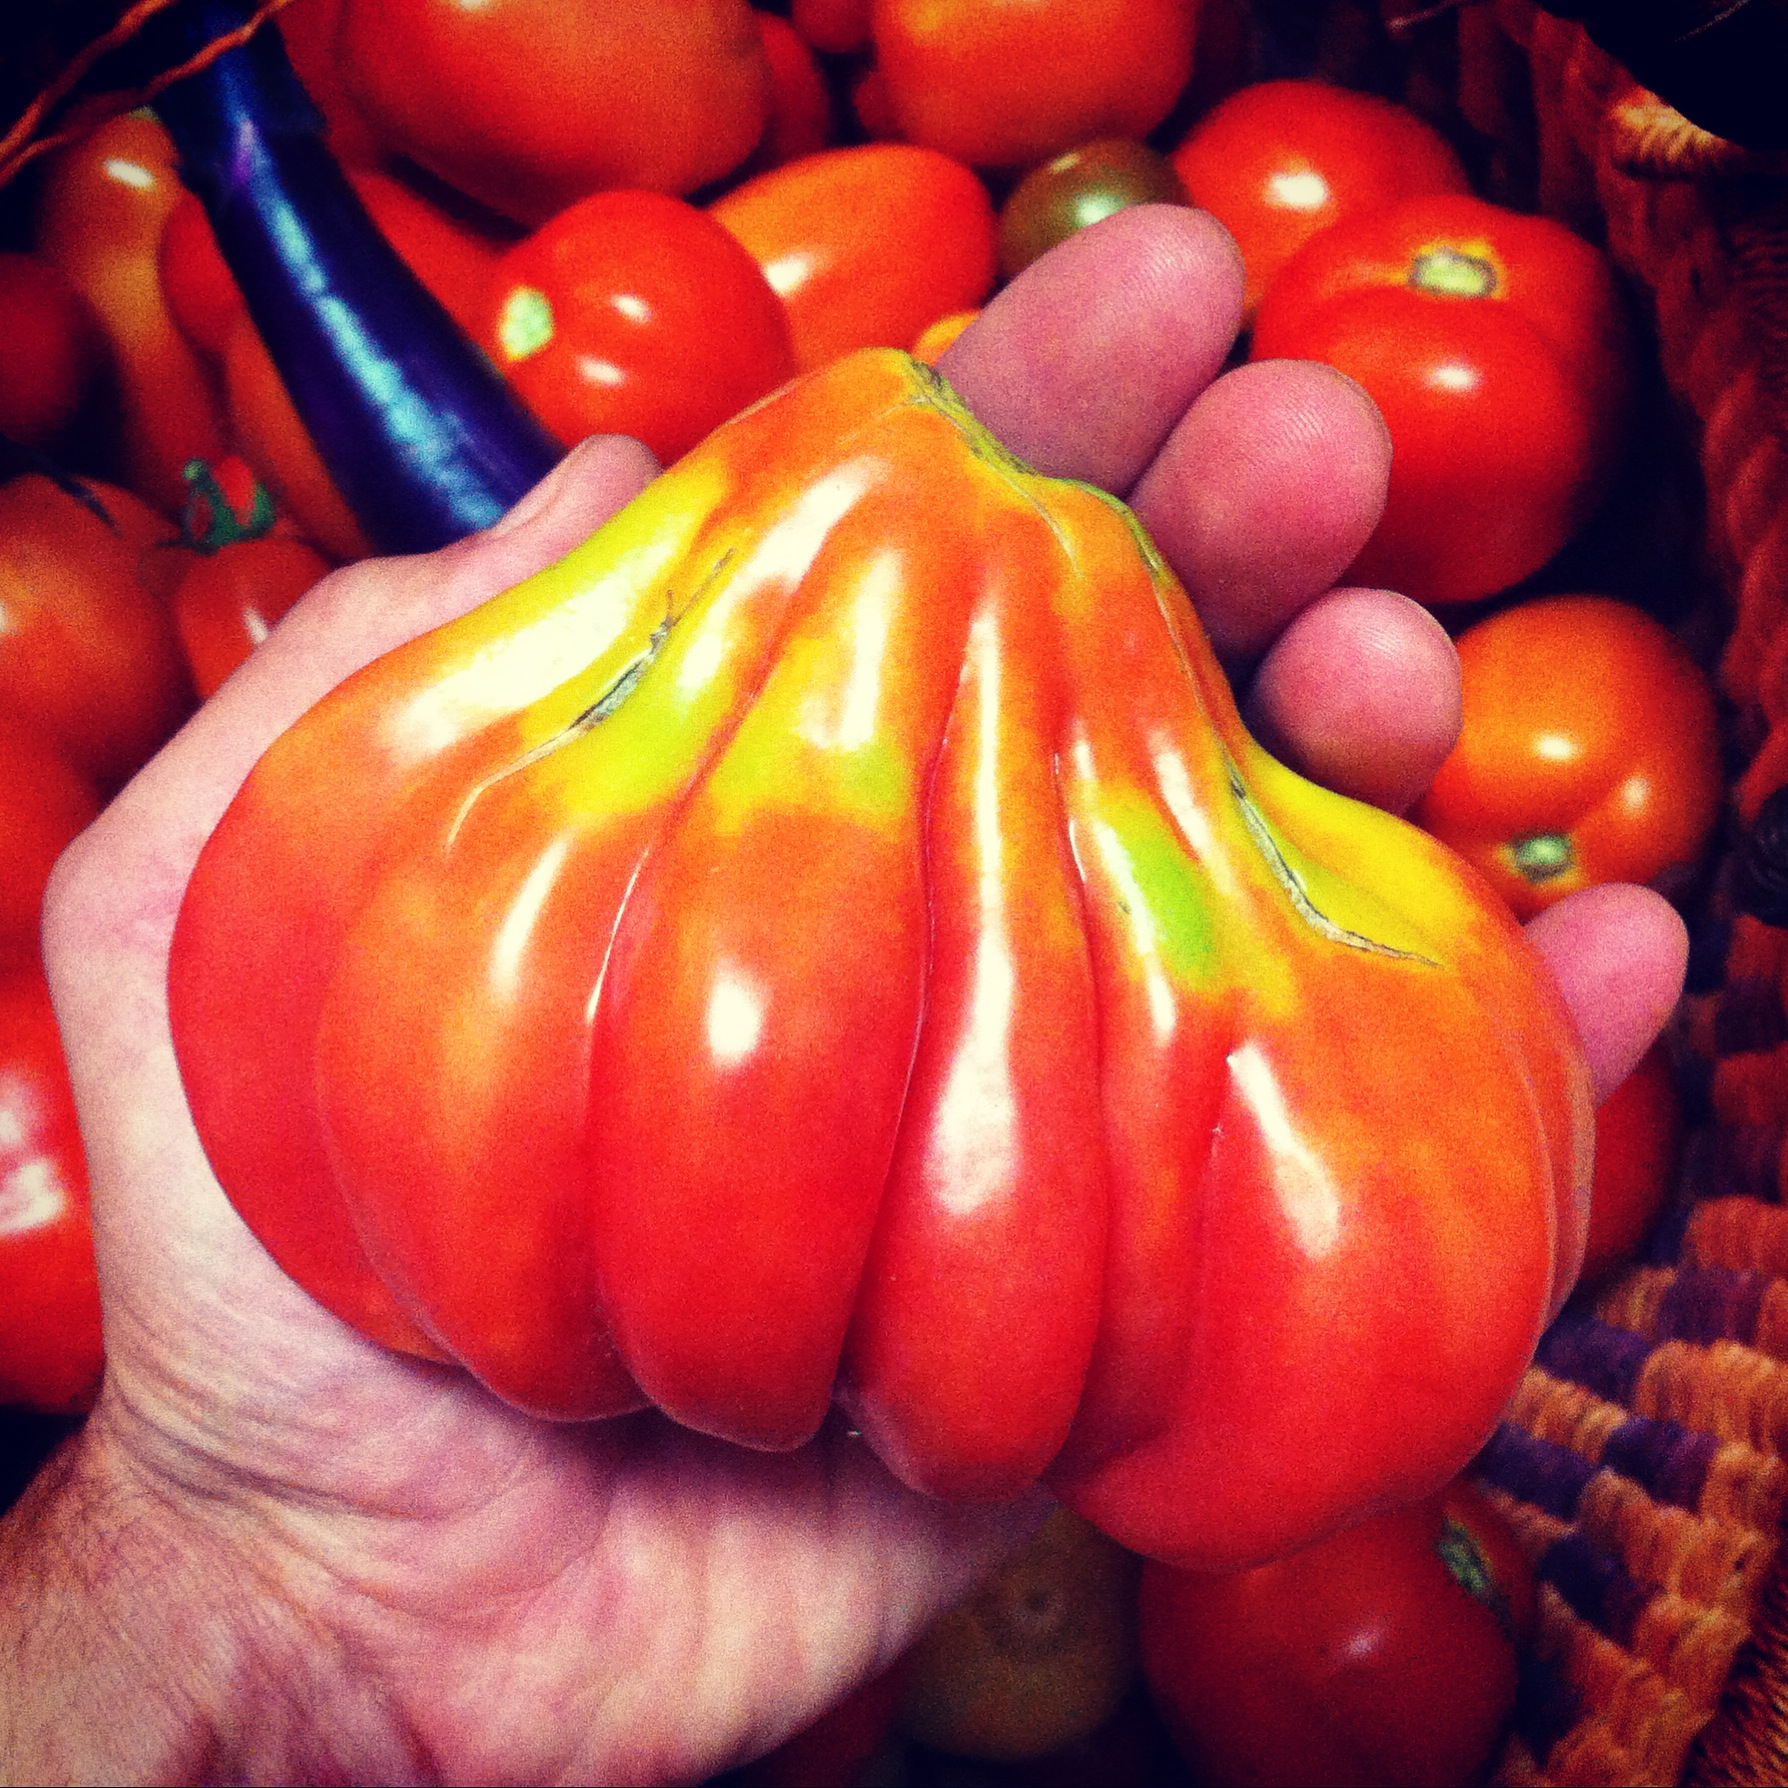 Tlacalula tomato, an heirloom stuffing tomato from Mexico. Cost of the single seed that grew this beauty? About 10 cents. And the tomato was full of new seeds that we can grow in future years. 5 tomato growing tricks by GrowJourney.com